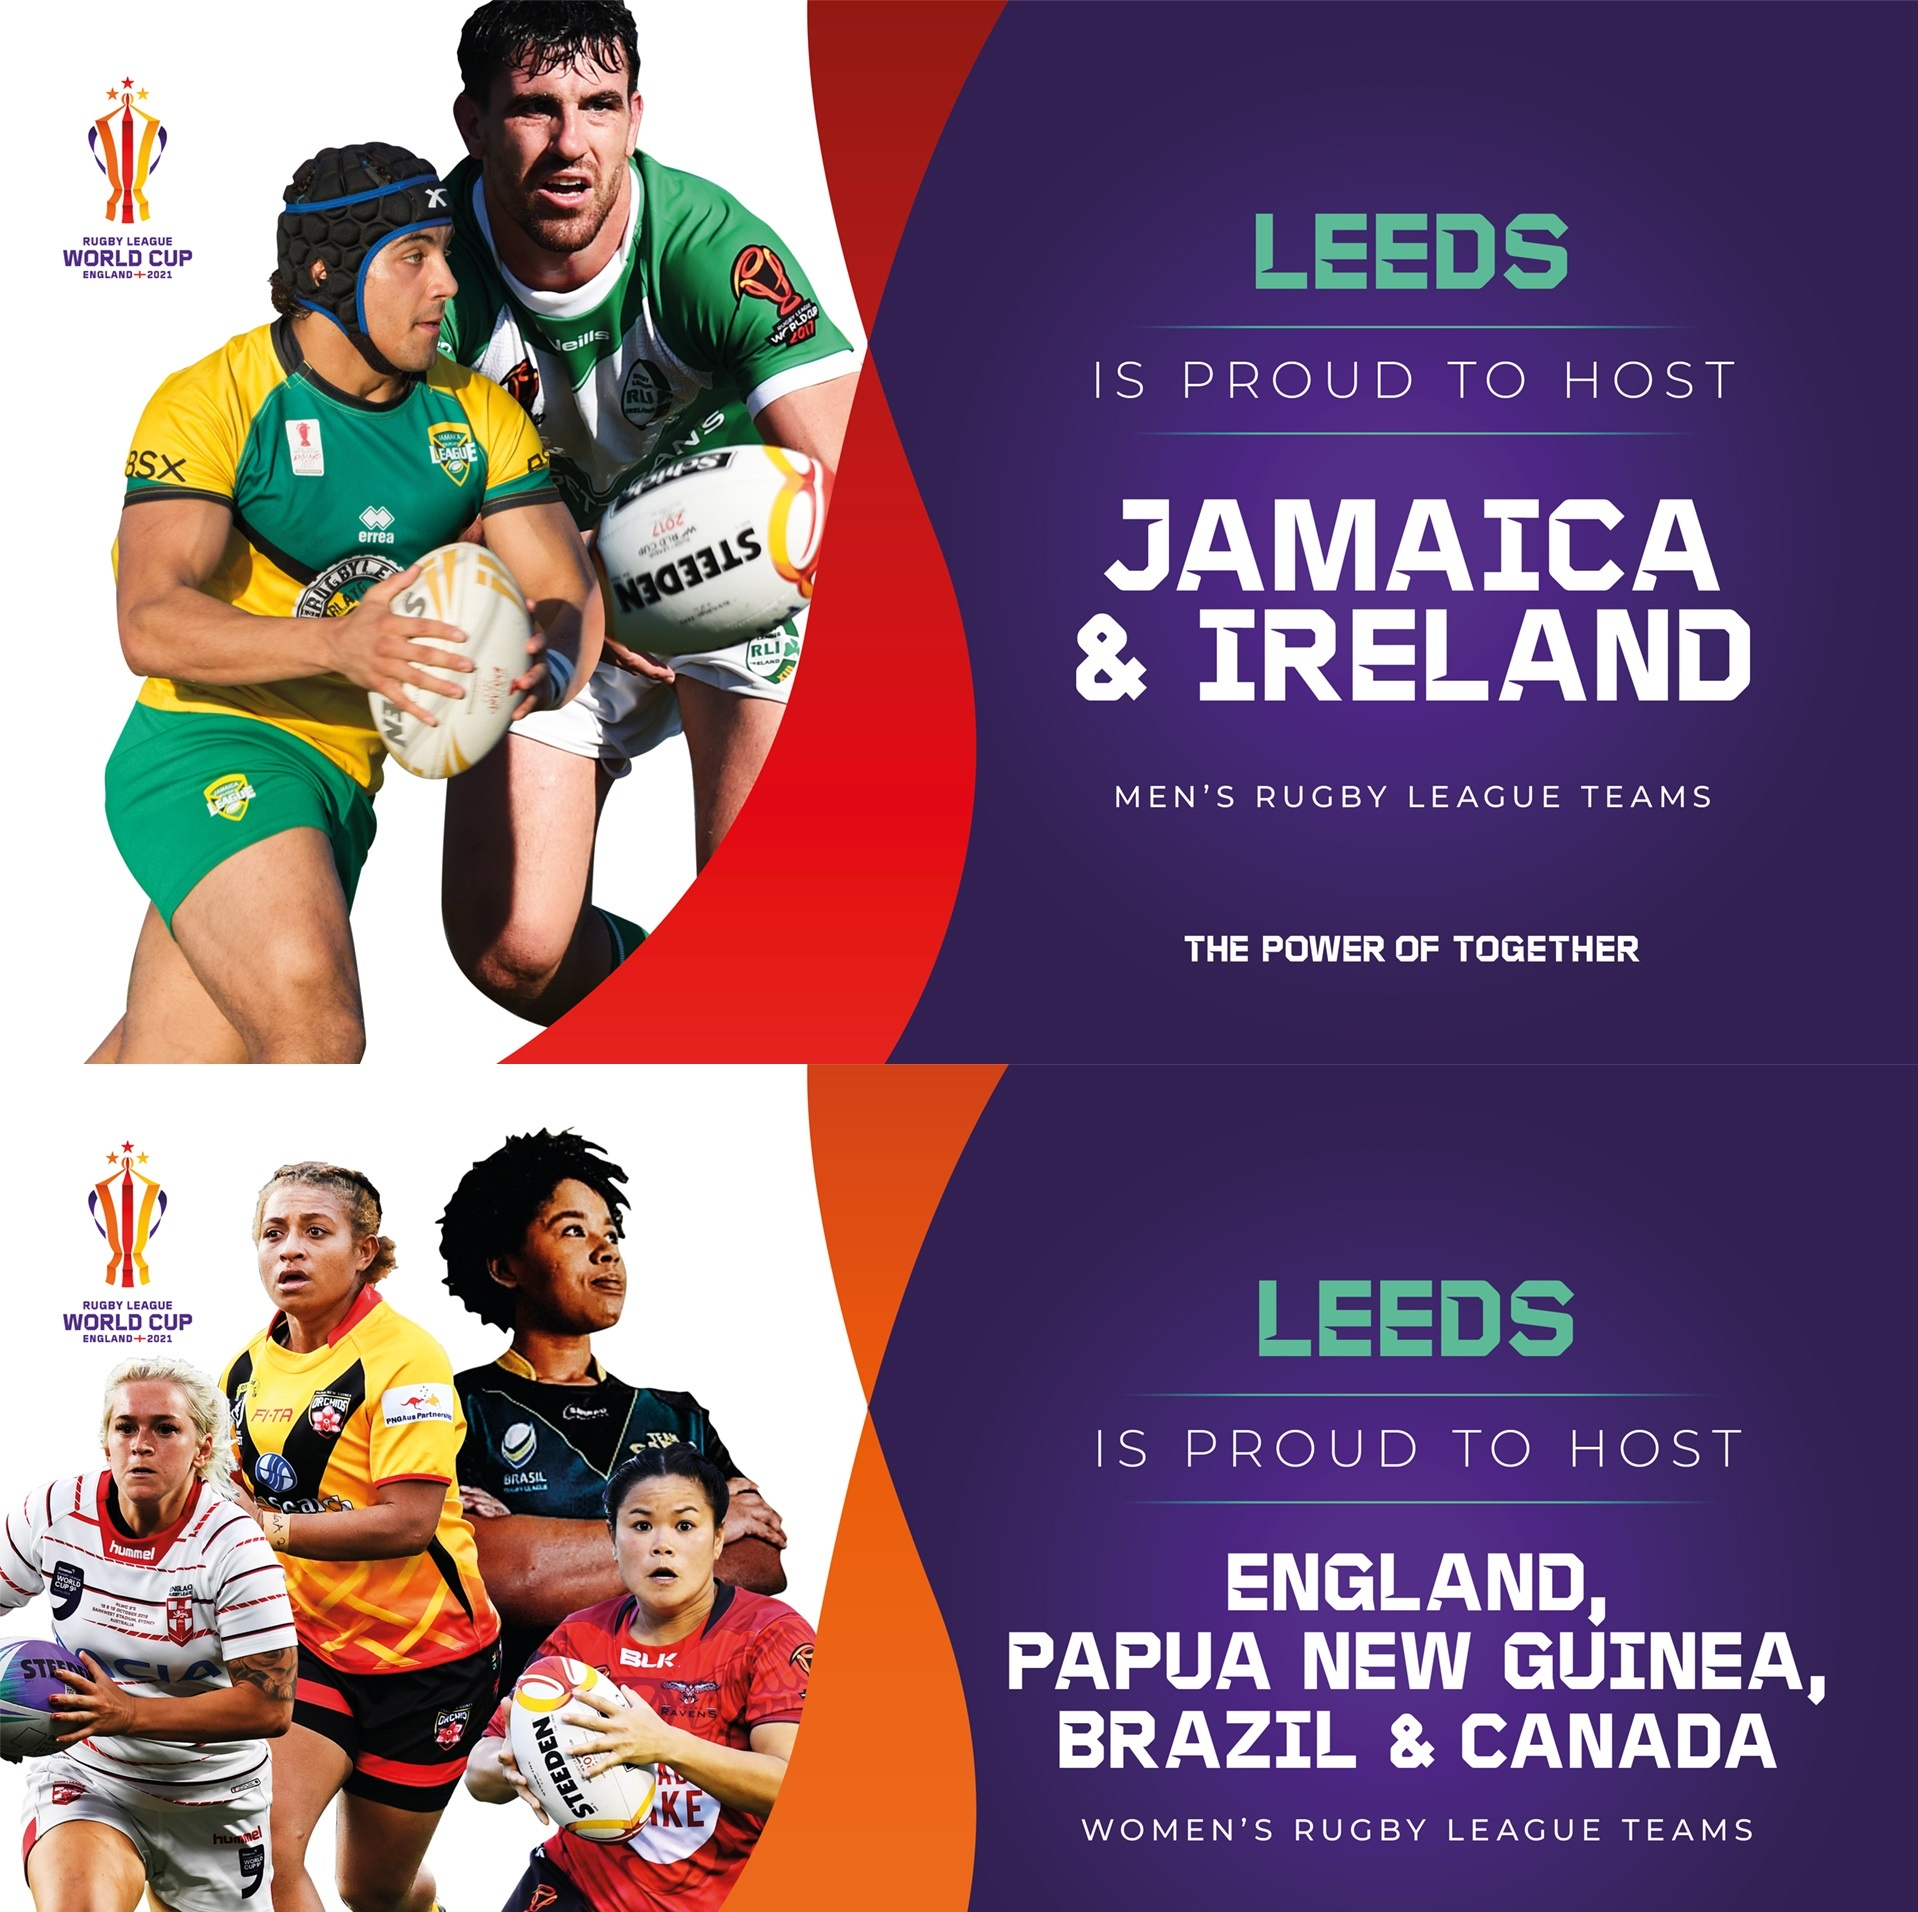 Rugby League World Cup - Leeds hosting teams